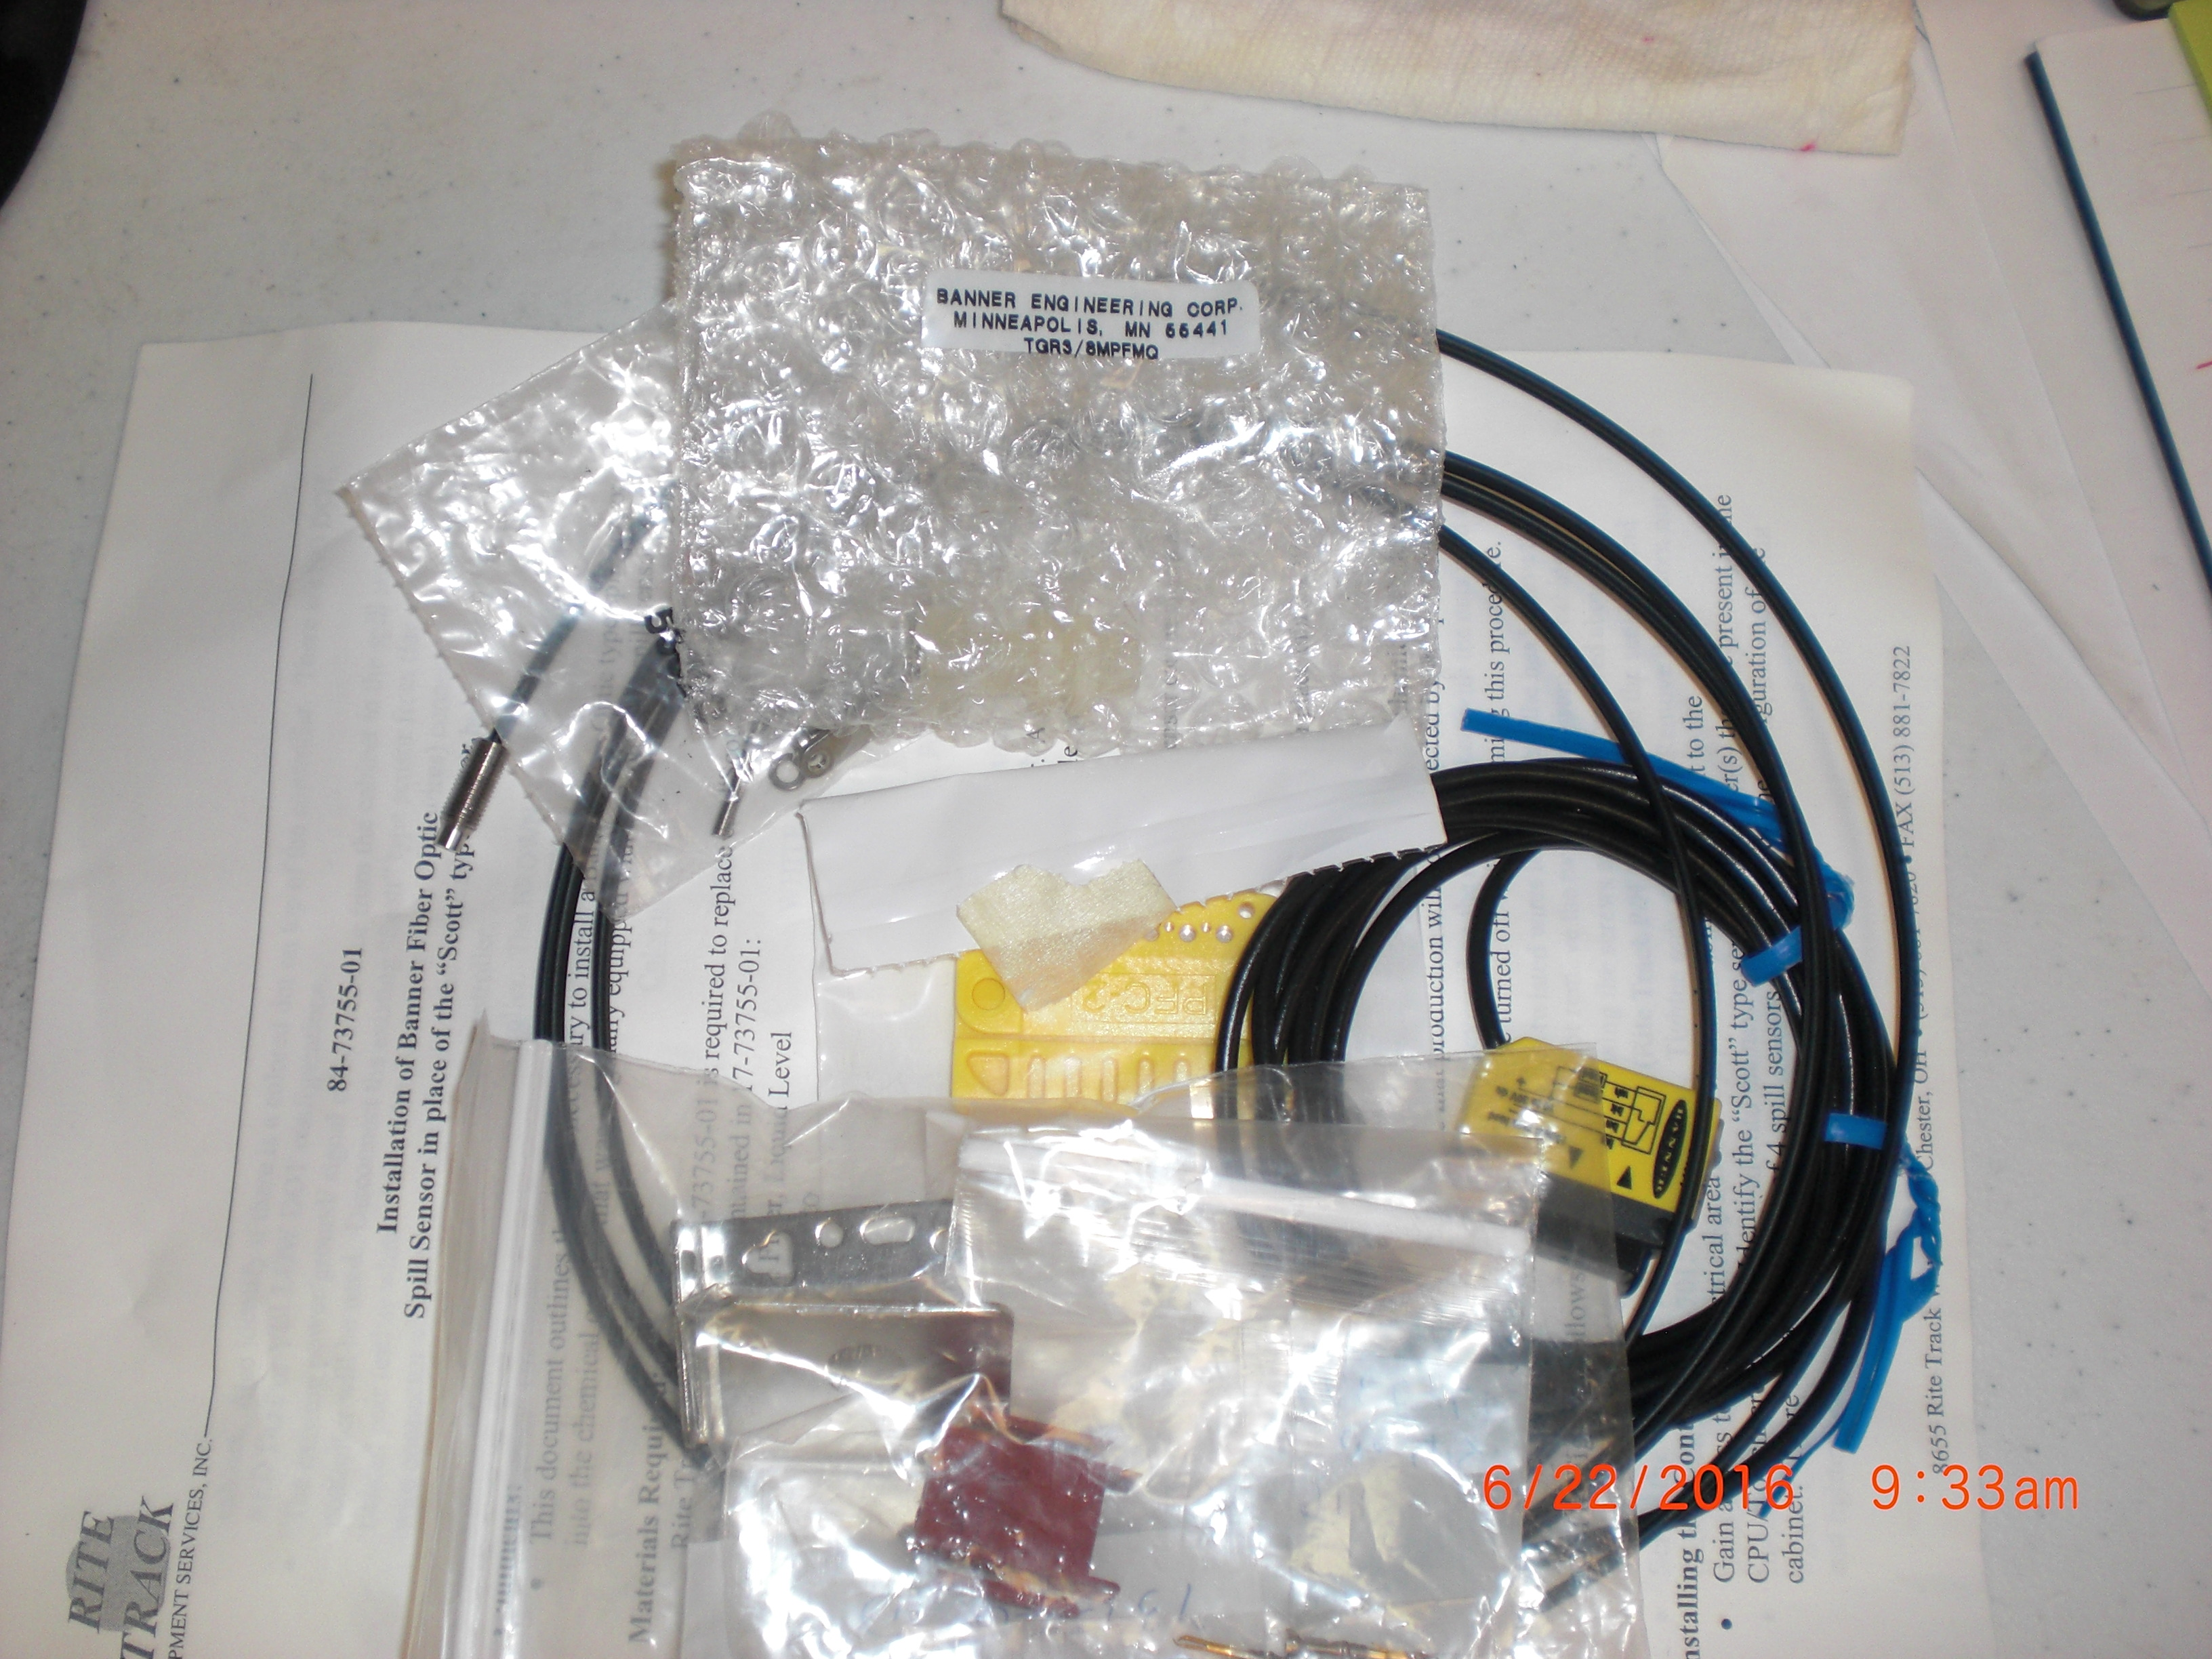 Fiber Optics RITE-TRACK 71-73755-01 Leak Sensor up grade Banner Fiber Optic